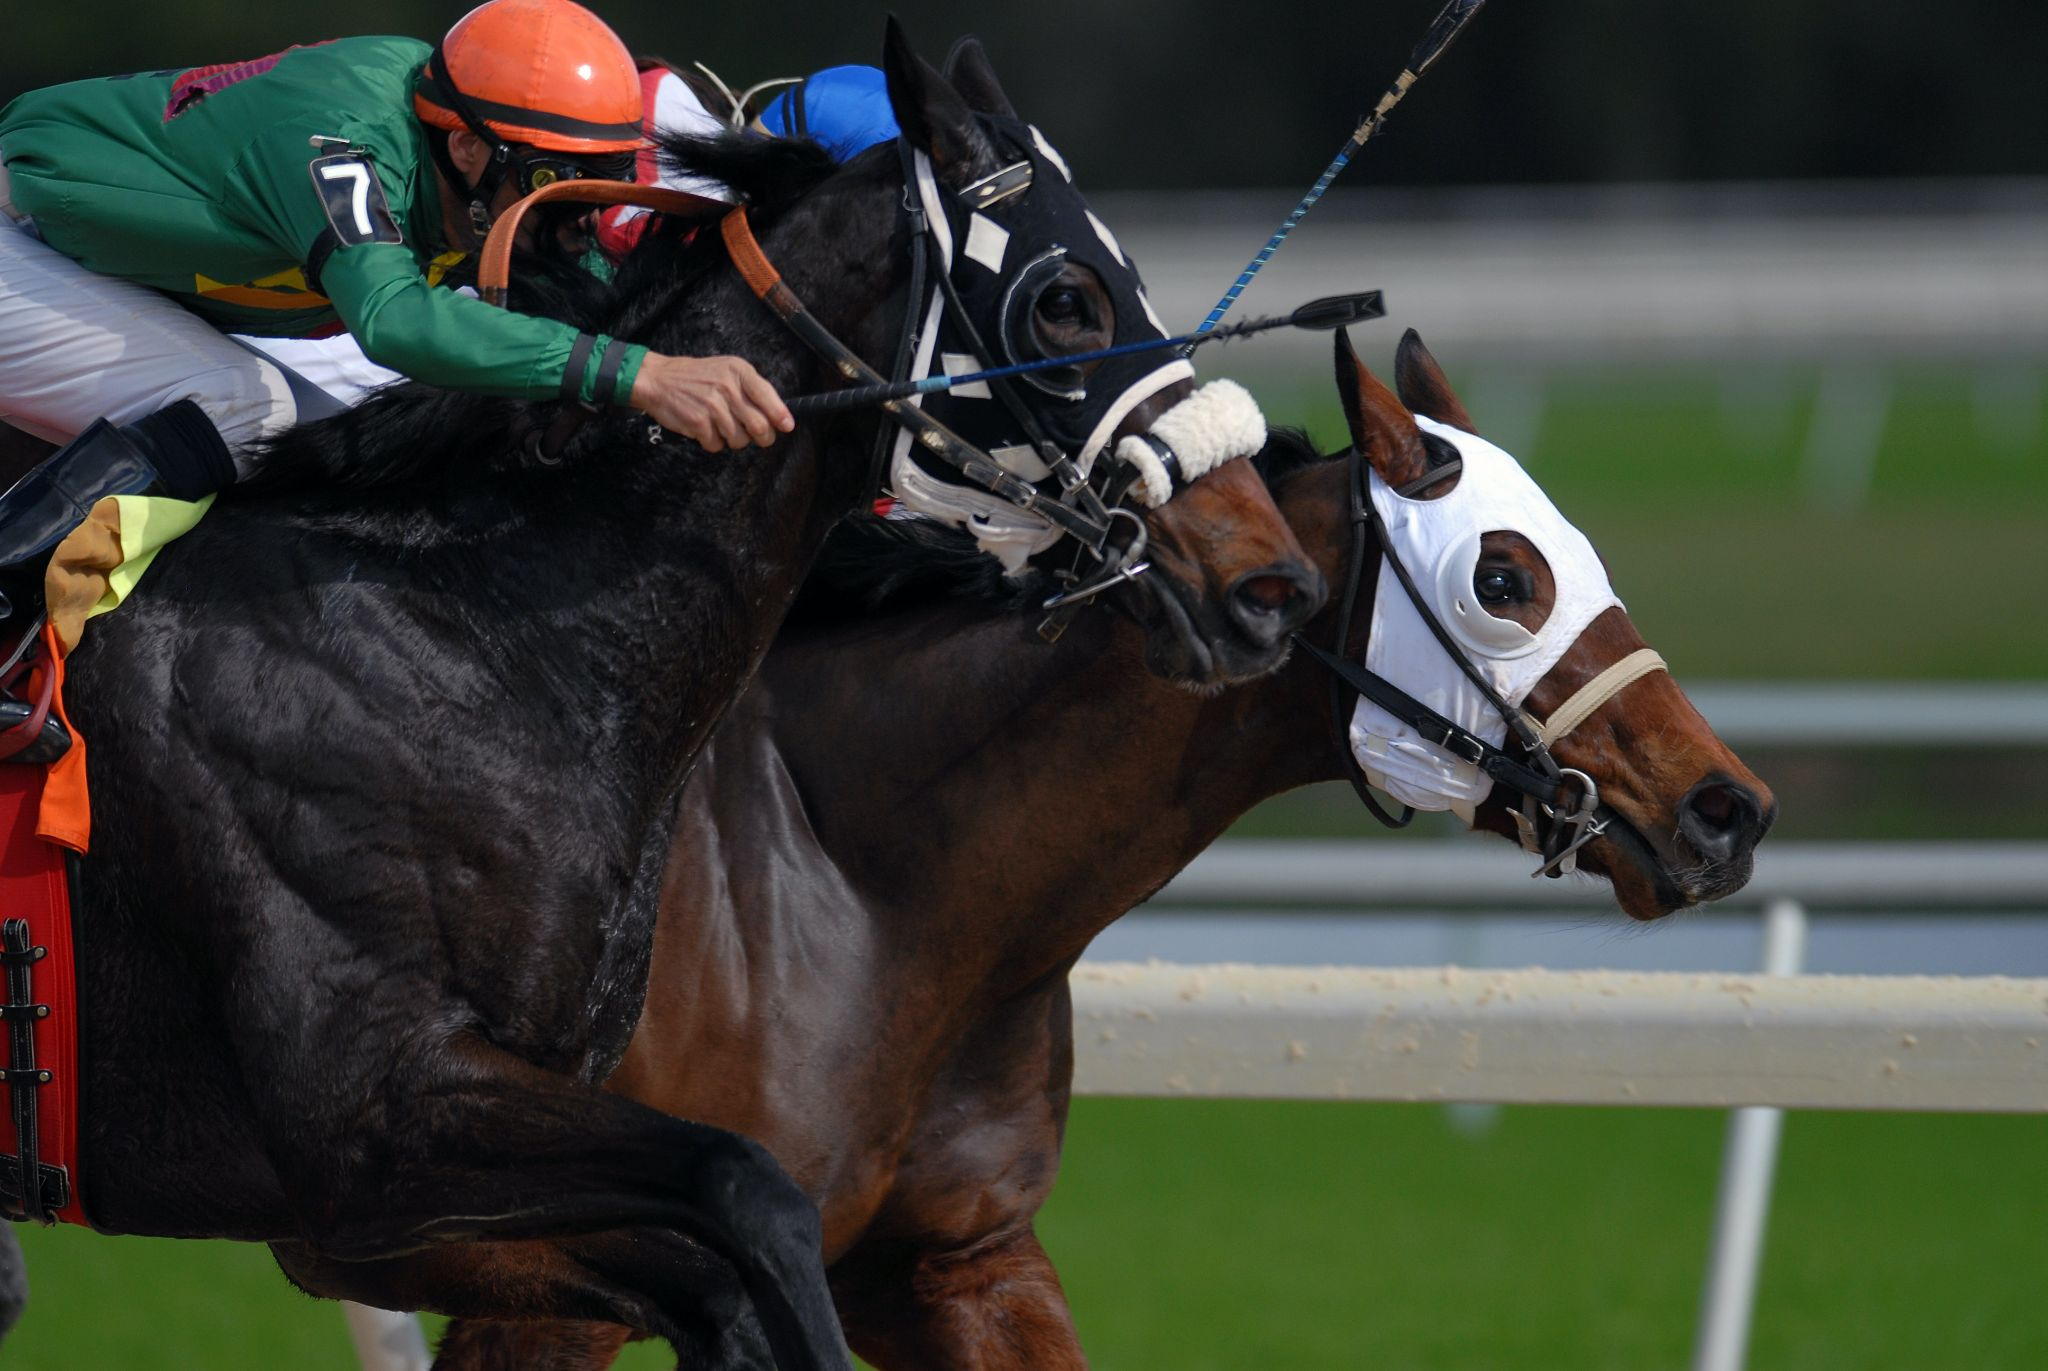 Does America or the UK have better horse racing events?